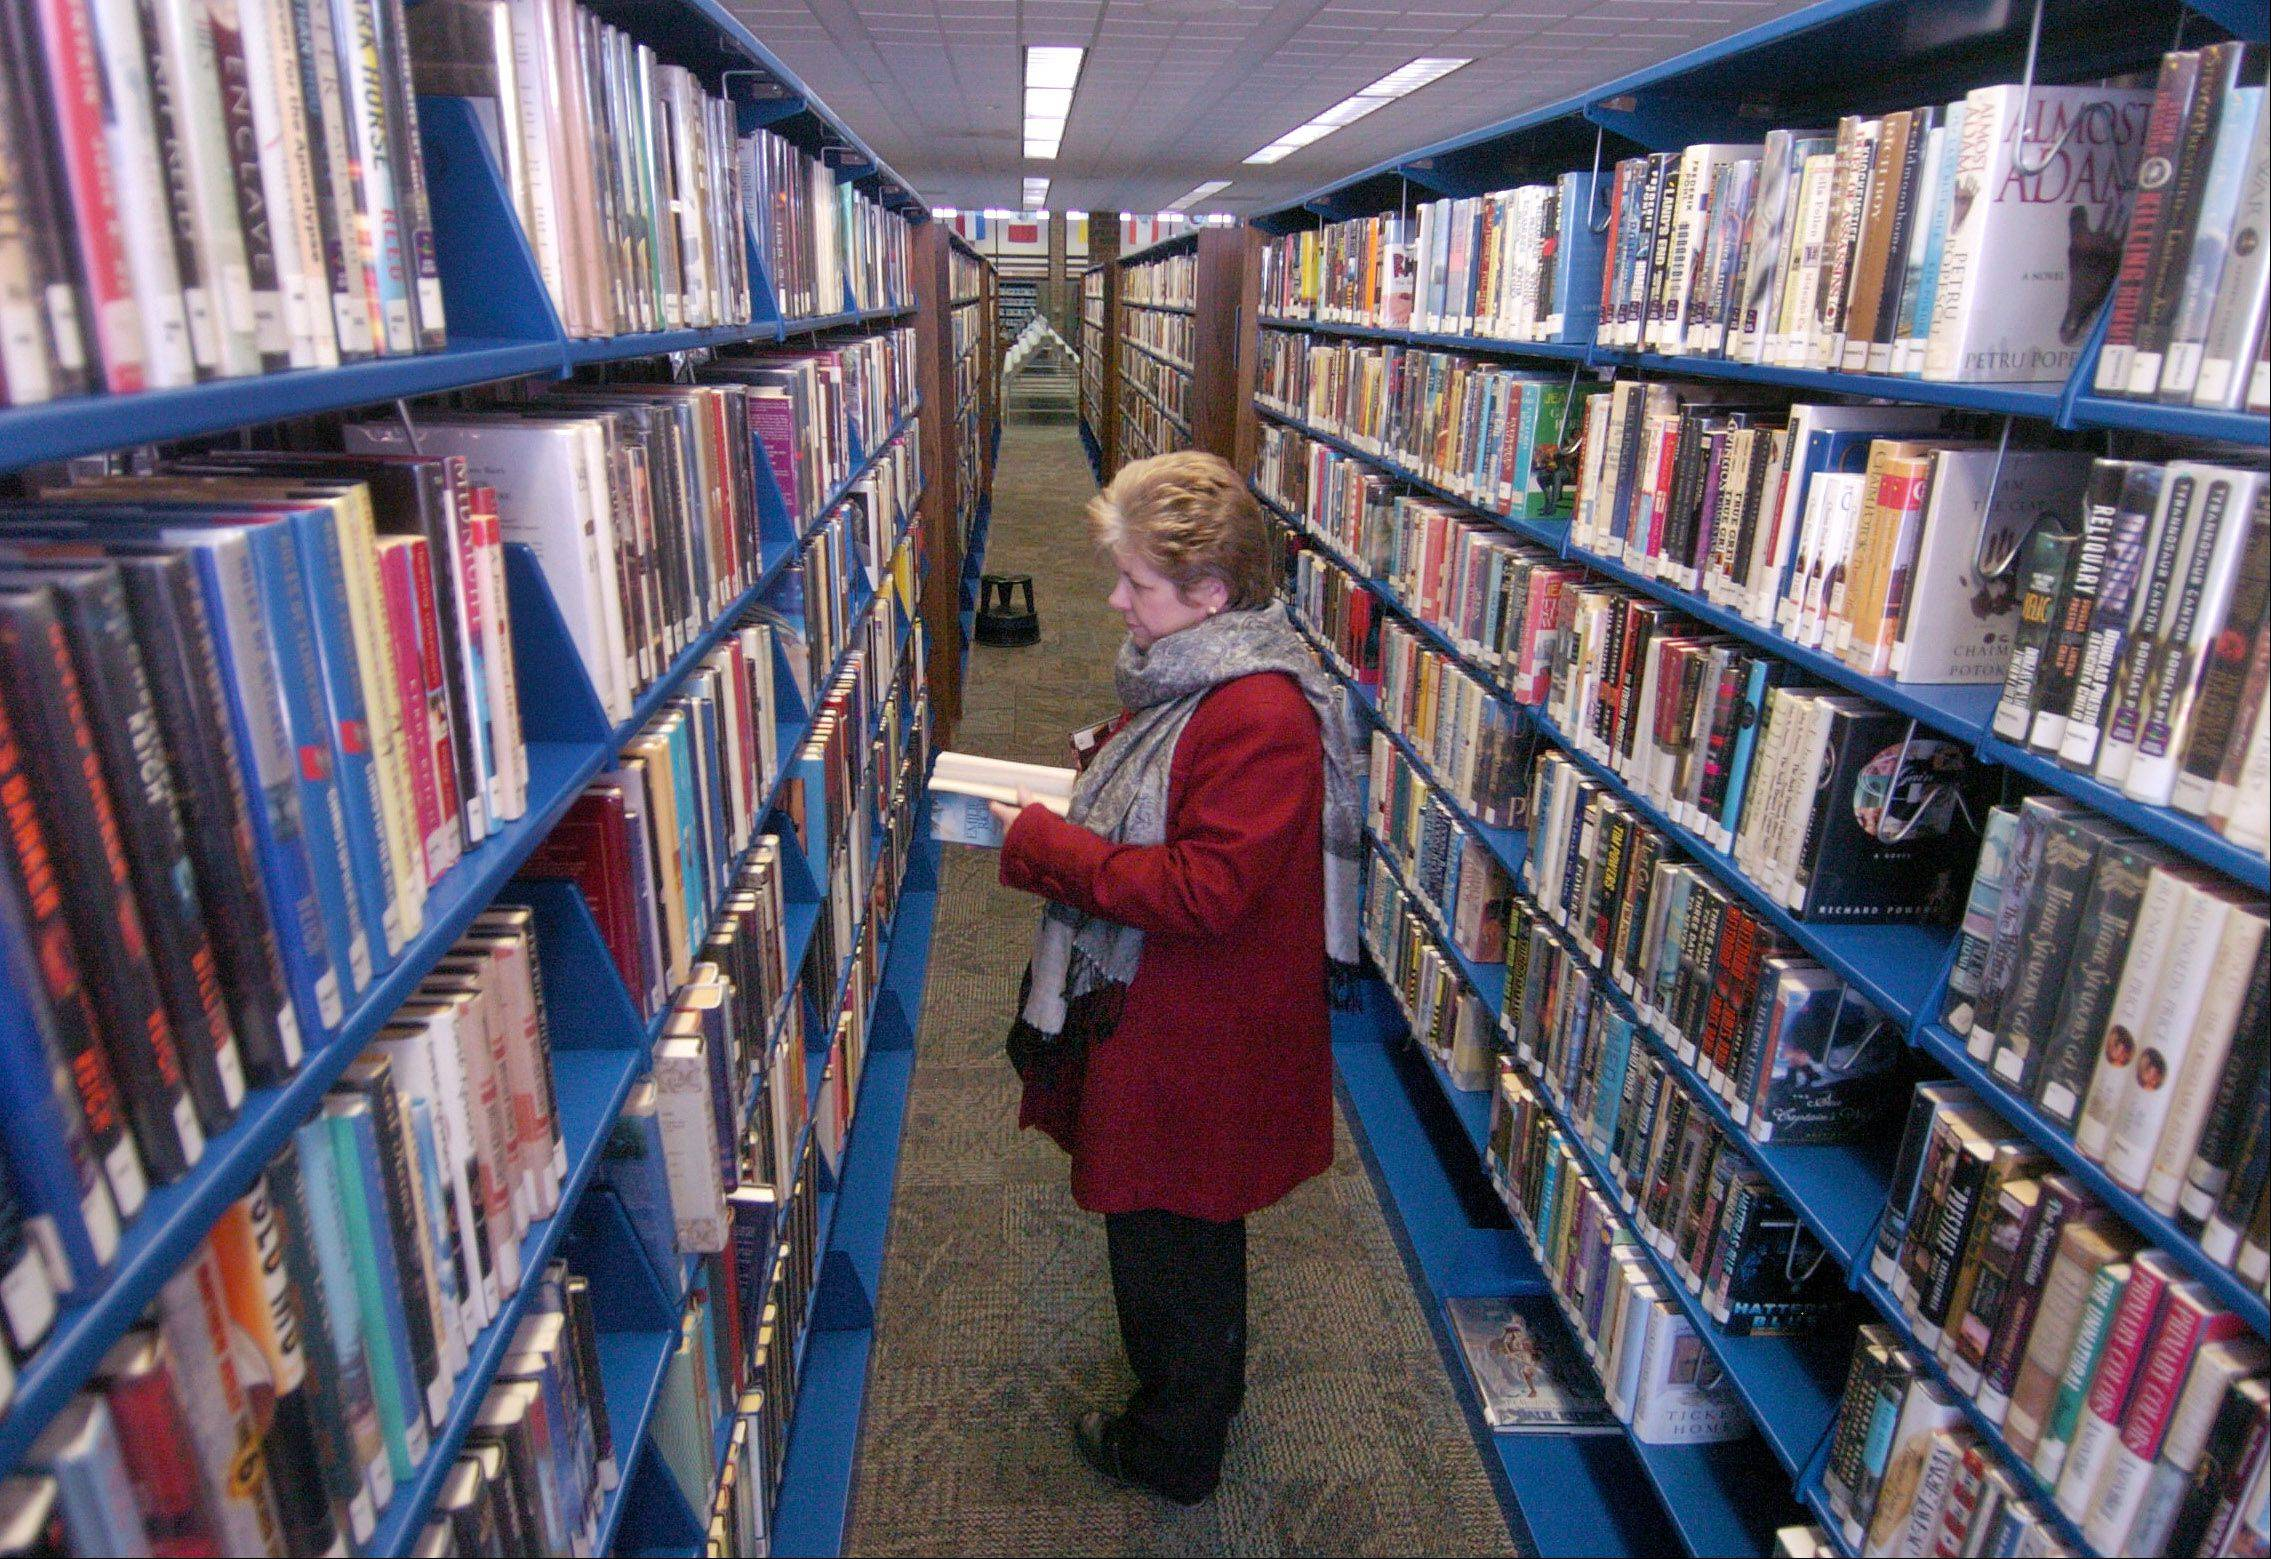 Lynn Thurman of Elk Grove Village picks out some fiction in the Elk Grove Village Library. As of May 1st, residents west of Rohlwing Road will lose their Elk Grove Village library cards because a tax-sharing deal between the Schaumburg and Elk Grove library districts is being canceled.